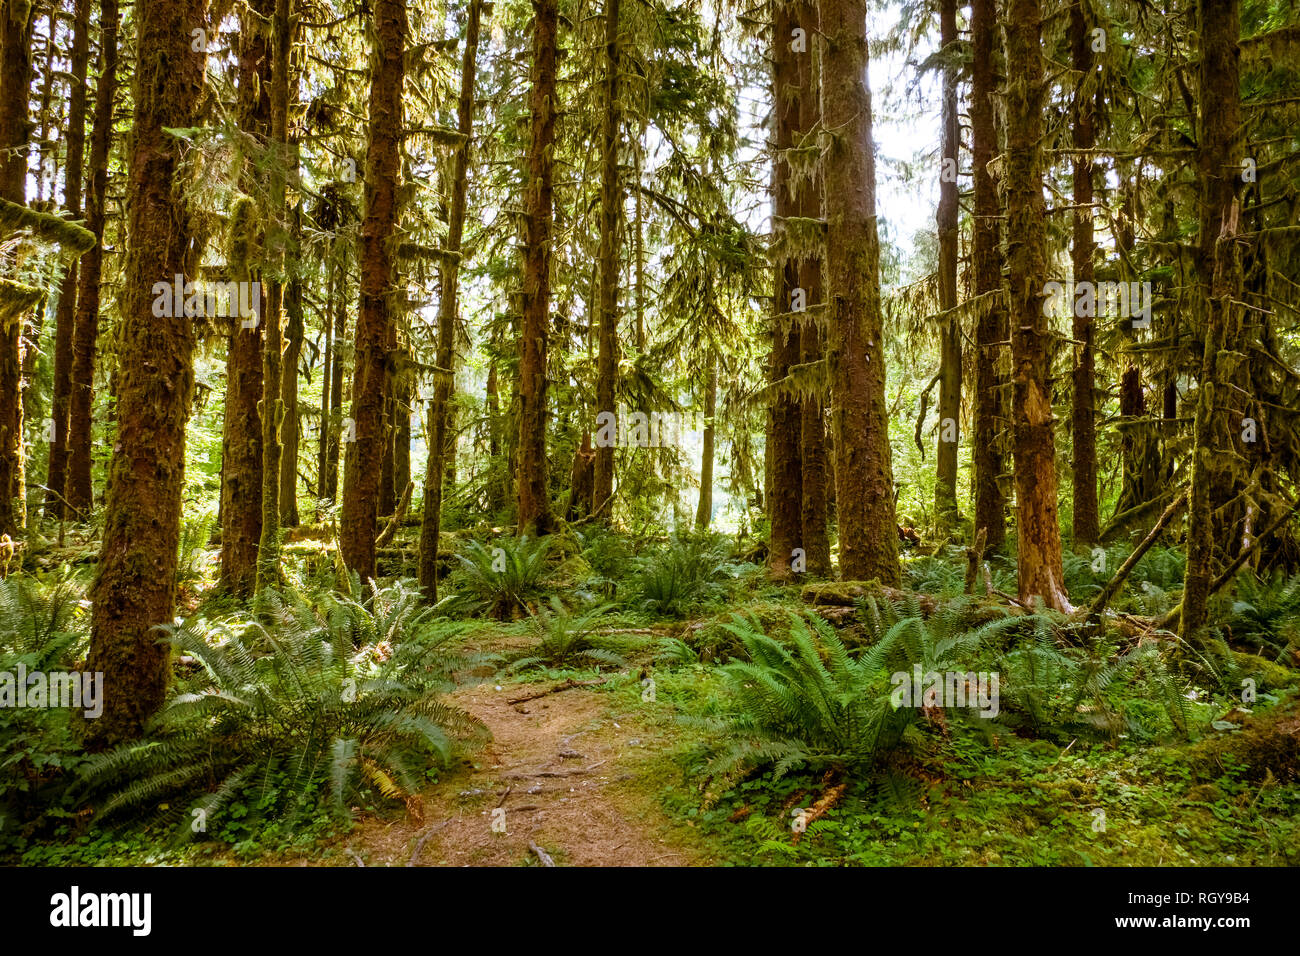 Hoh forest in the olympic peninsula in washington state USA Stock Photo